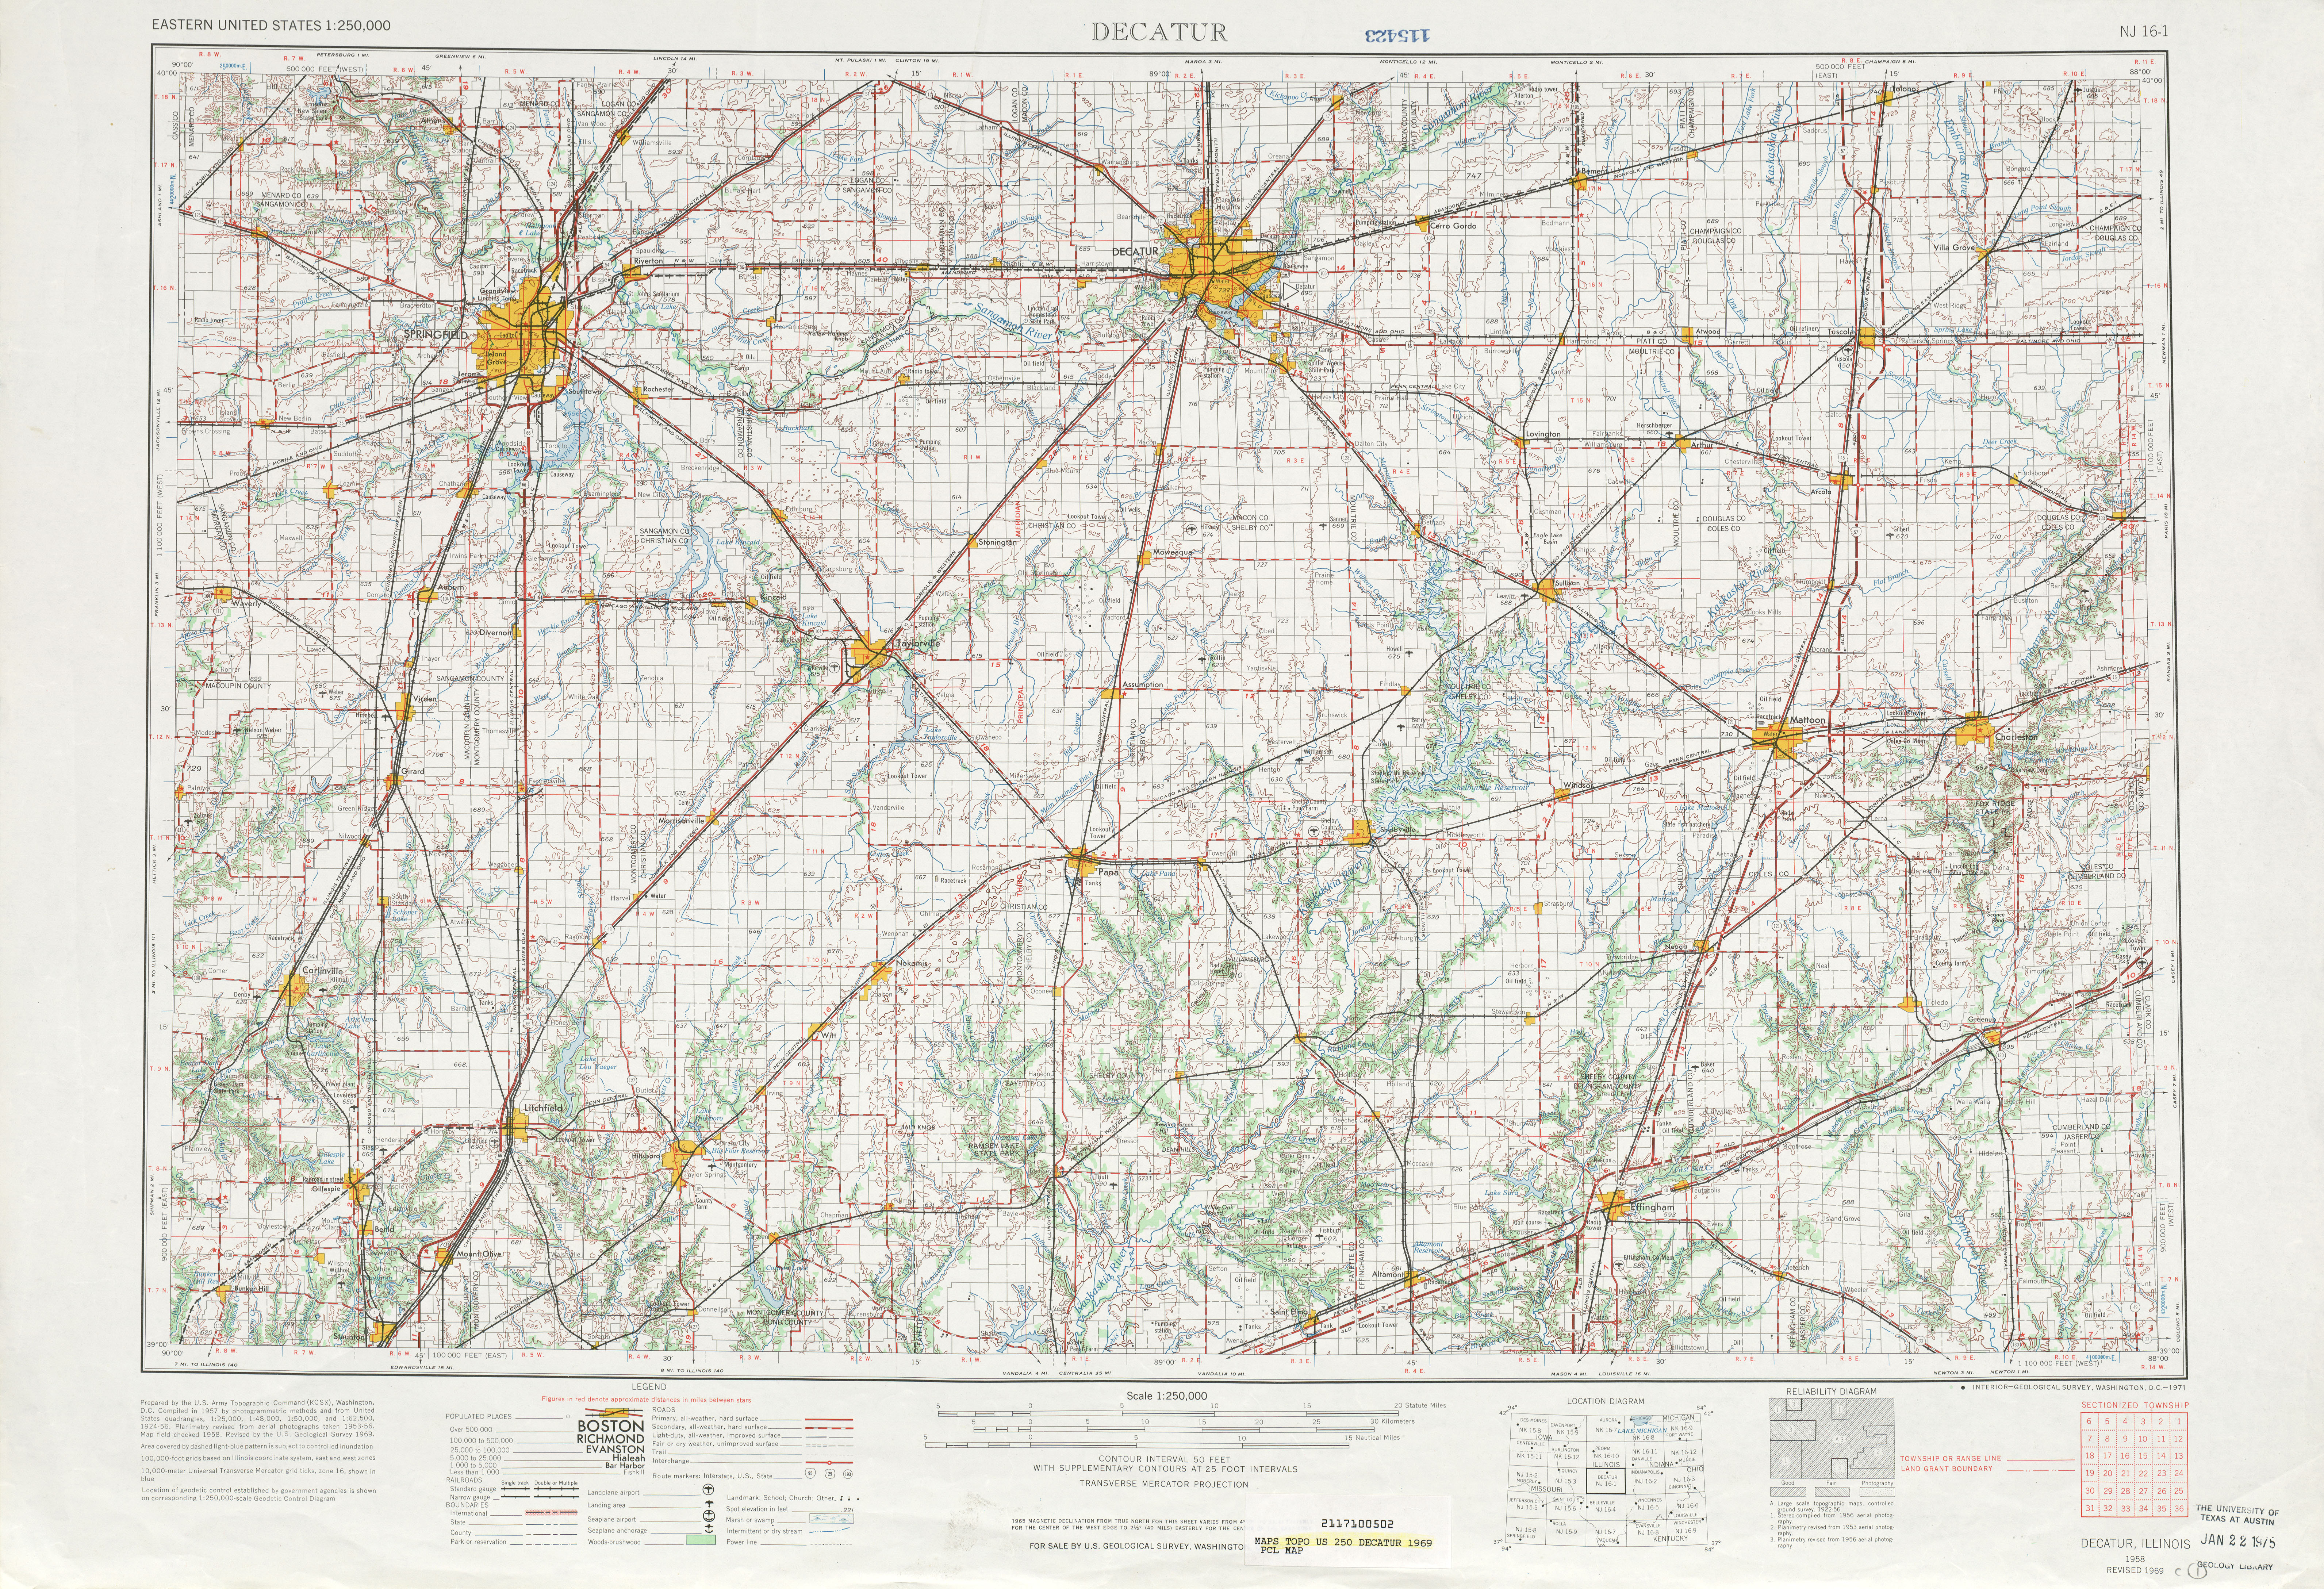 Decatur Topographic Map Sheet, United States 1969